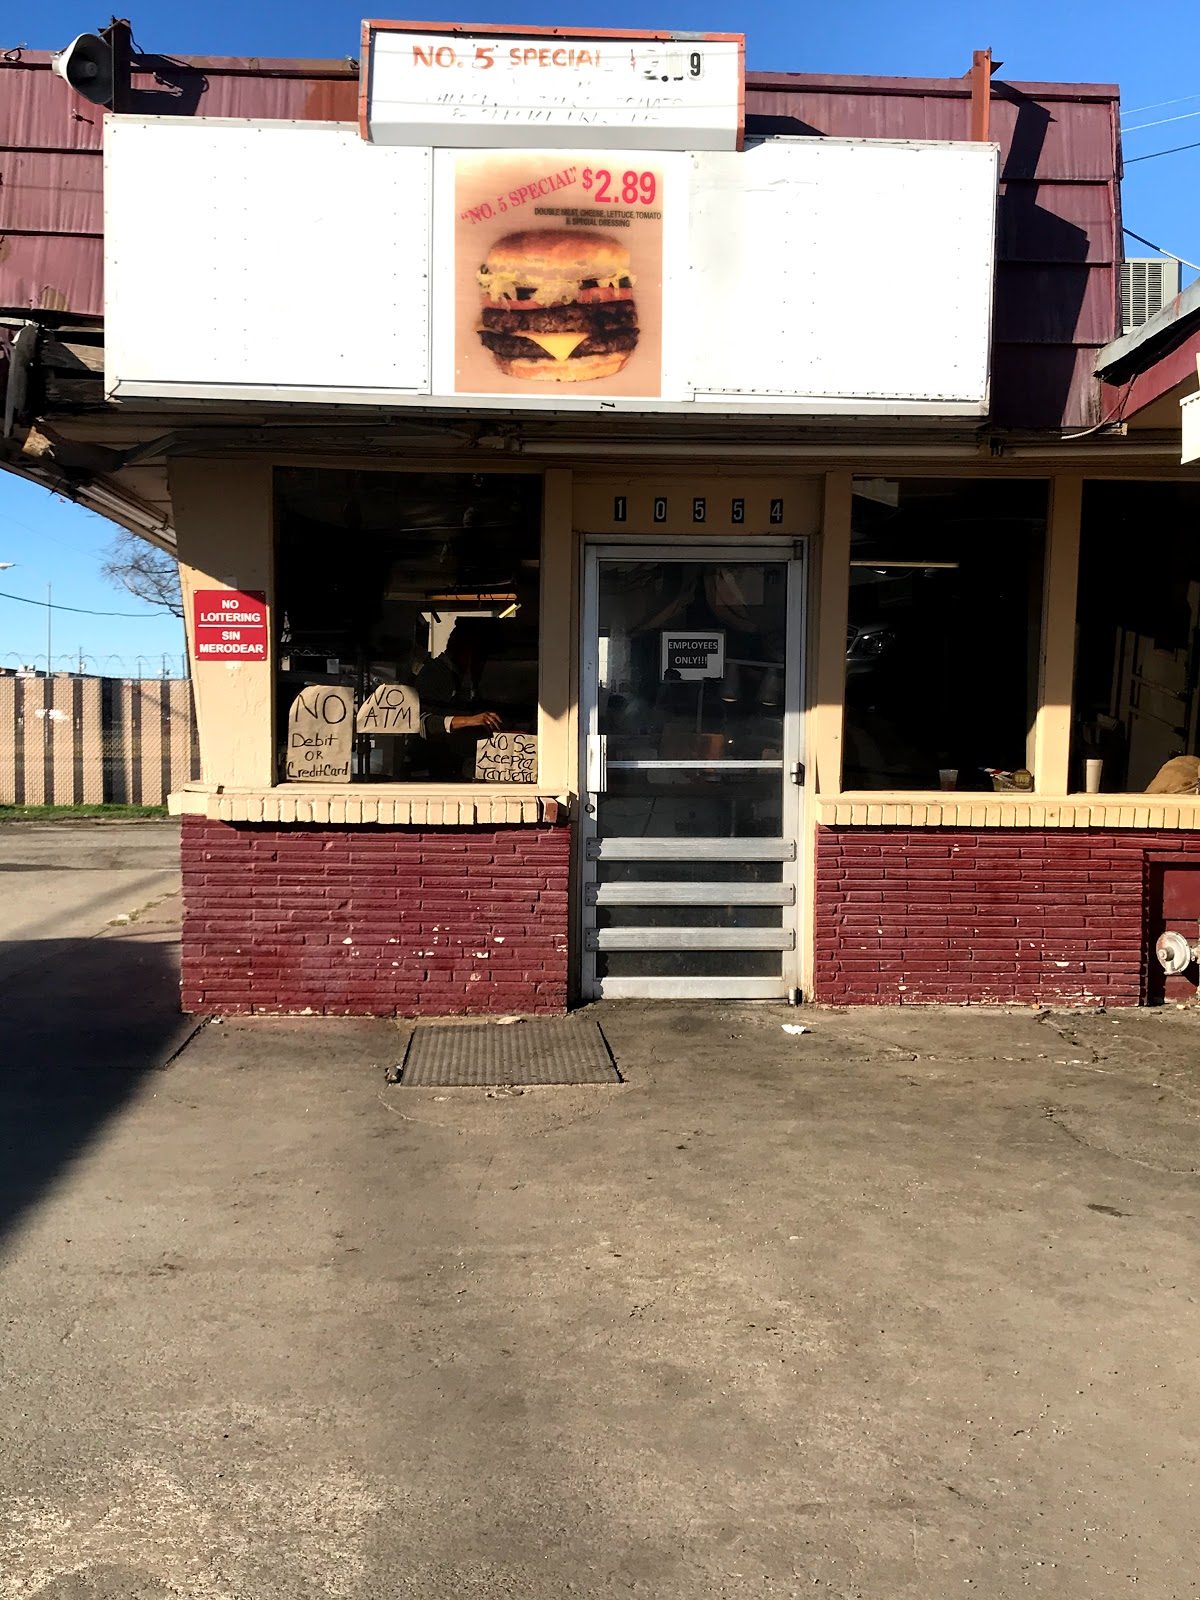 Kellers Drive In For Fresh Homemade Burgers and Shakes